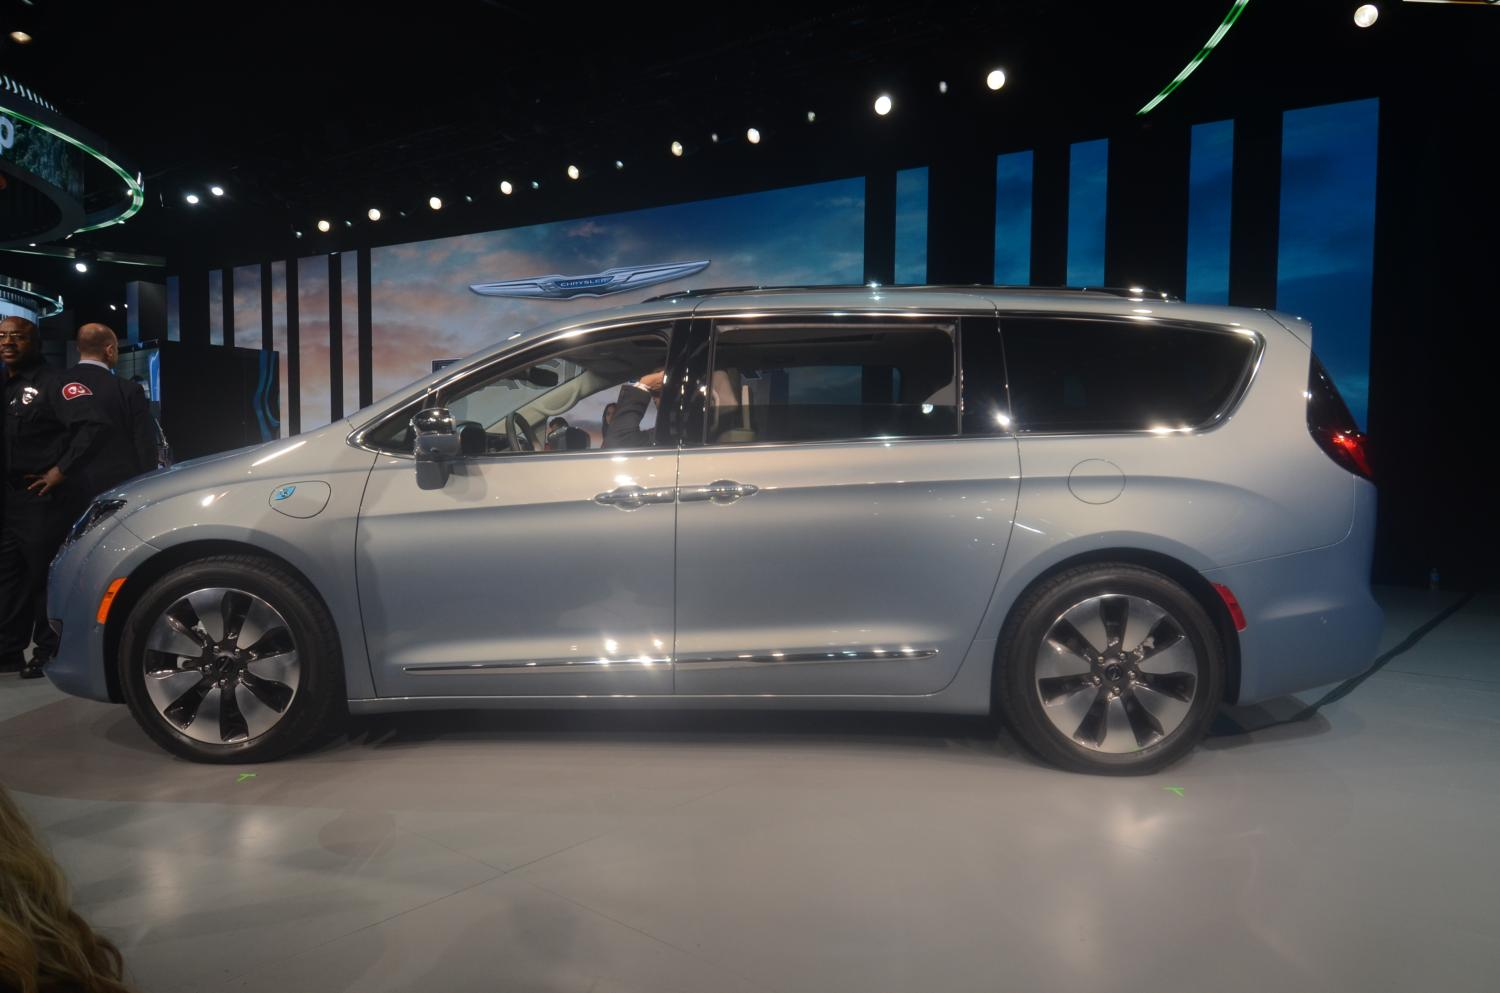 2017 Chrysler Pacifica Hybrid Hits 75 MPH in EV Mode, Has ...